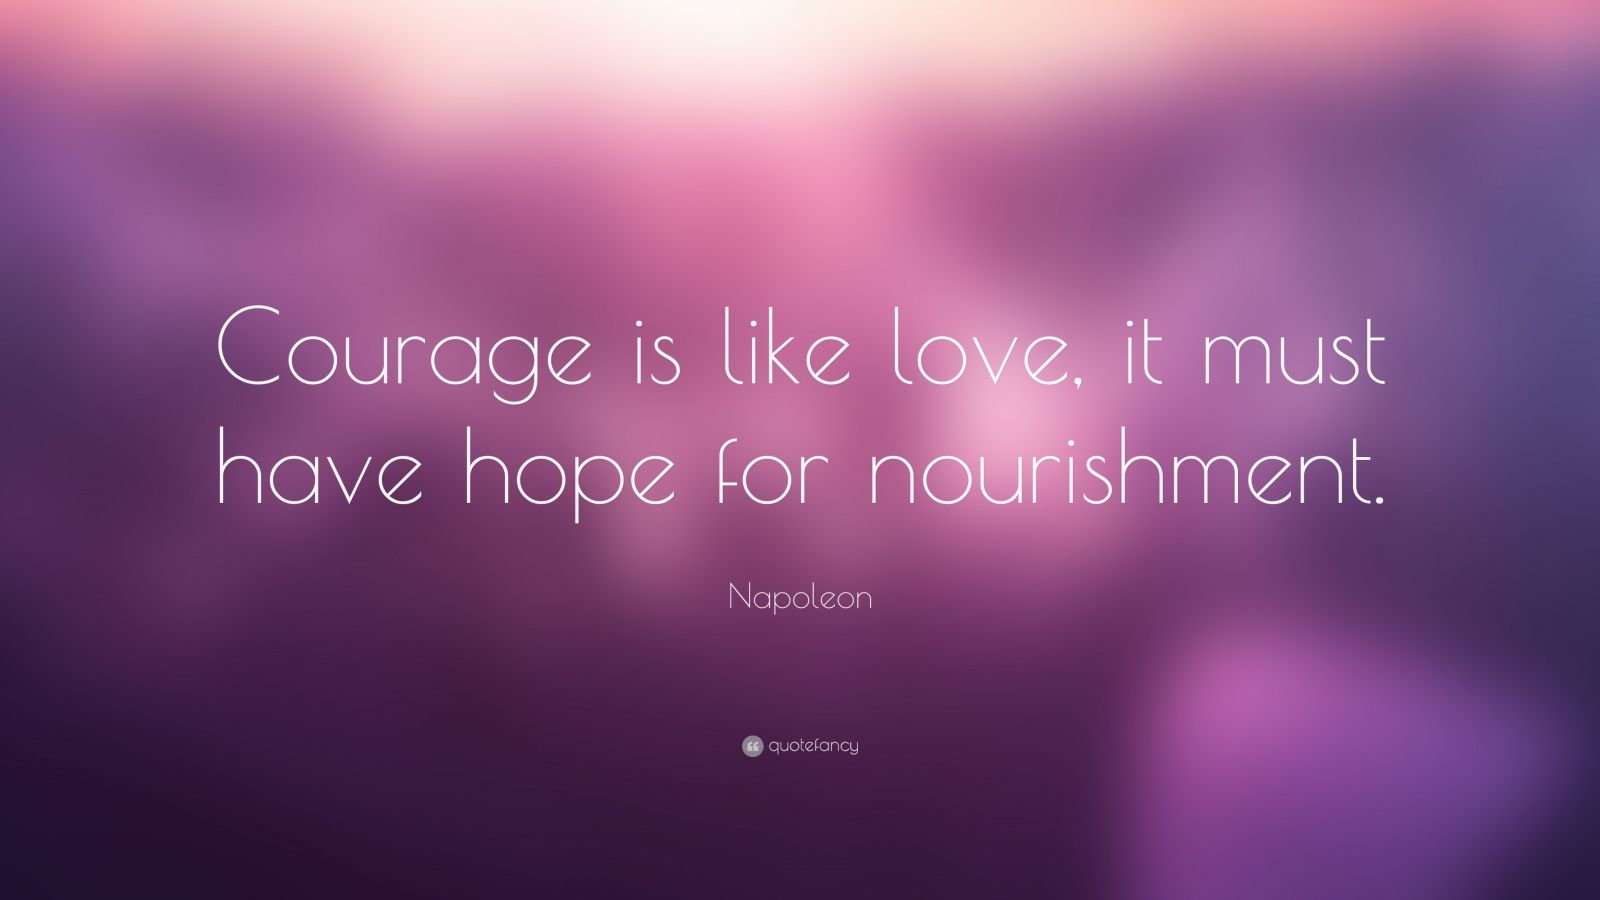 Love courage Quotes Wallpaper : Napoleon Quote: ?courage is like love, it must have hope for nourishment.? (15 wallpapers ...